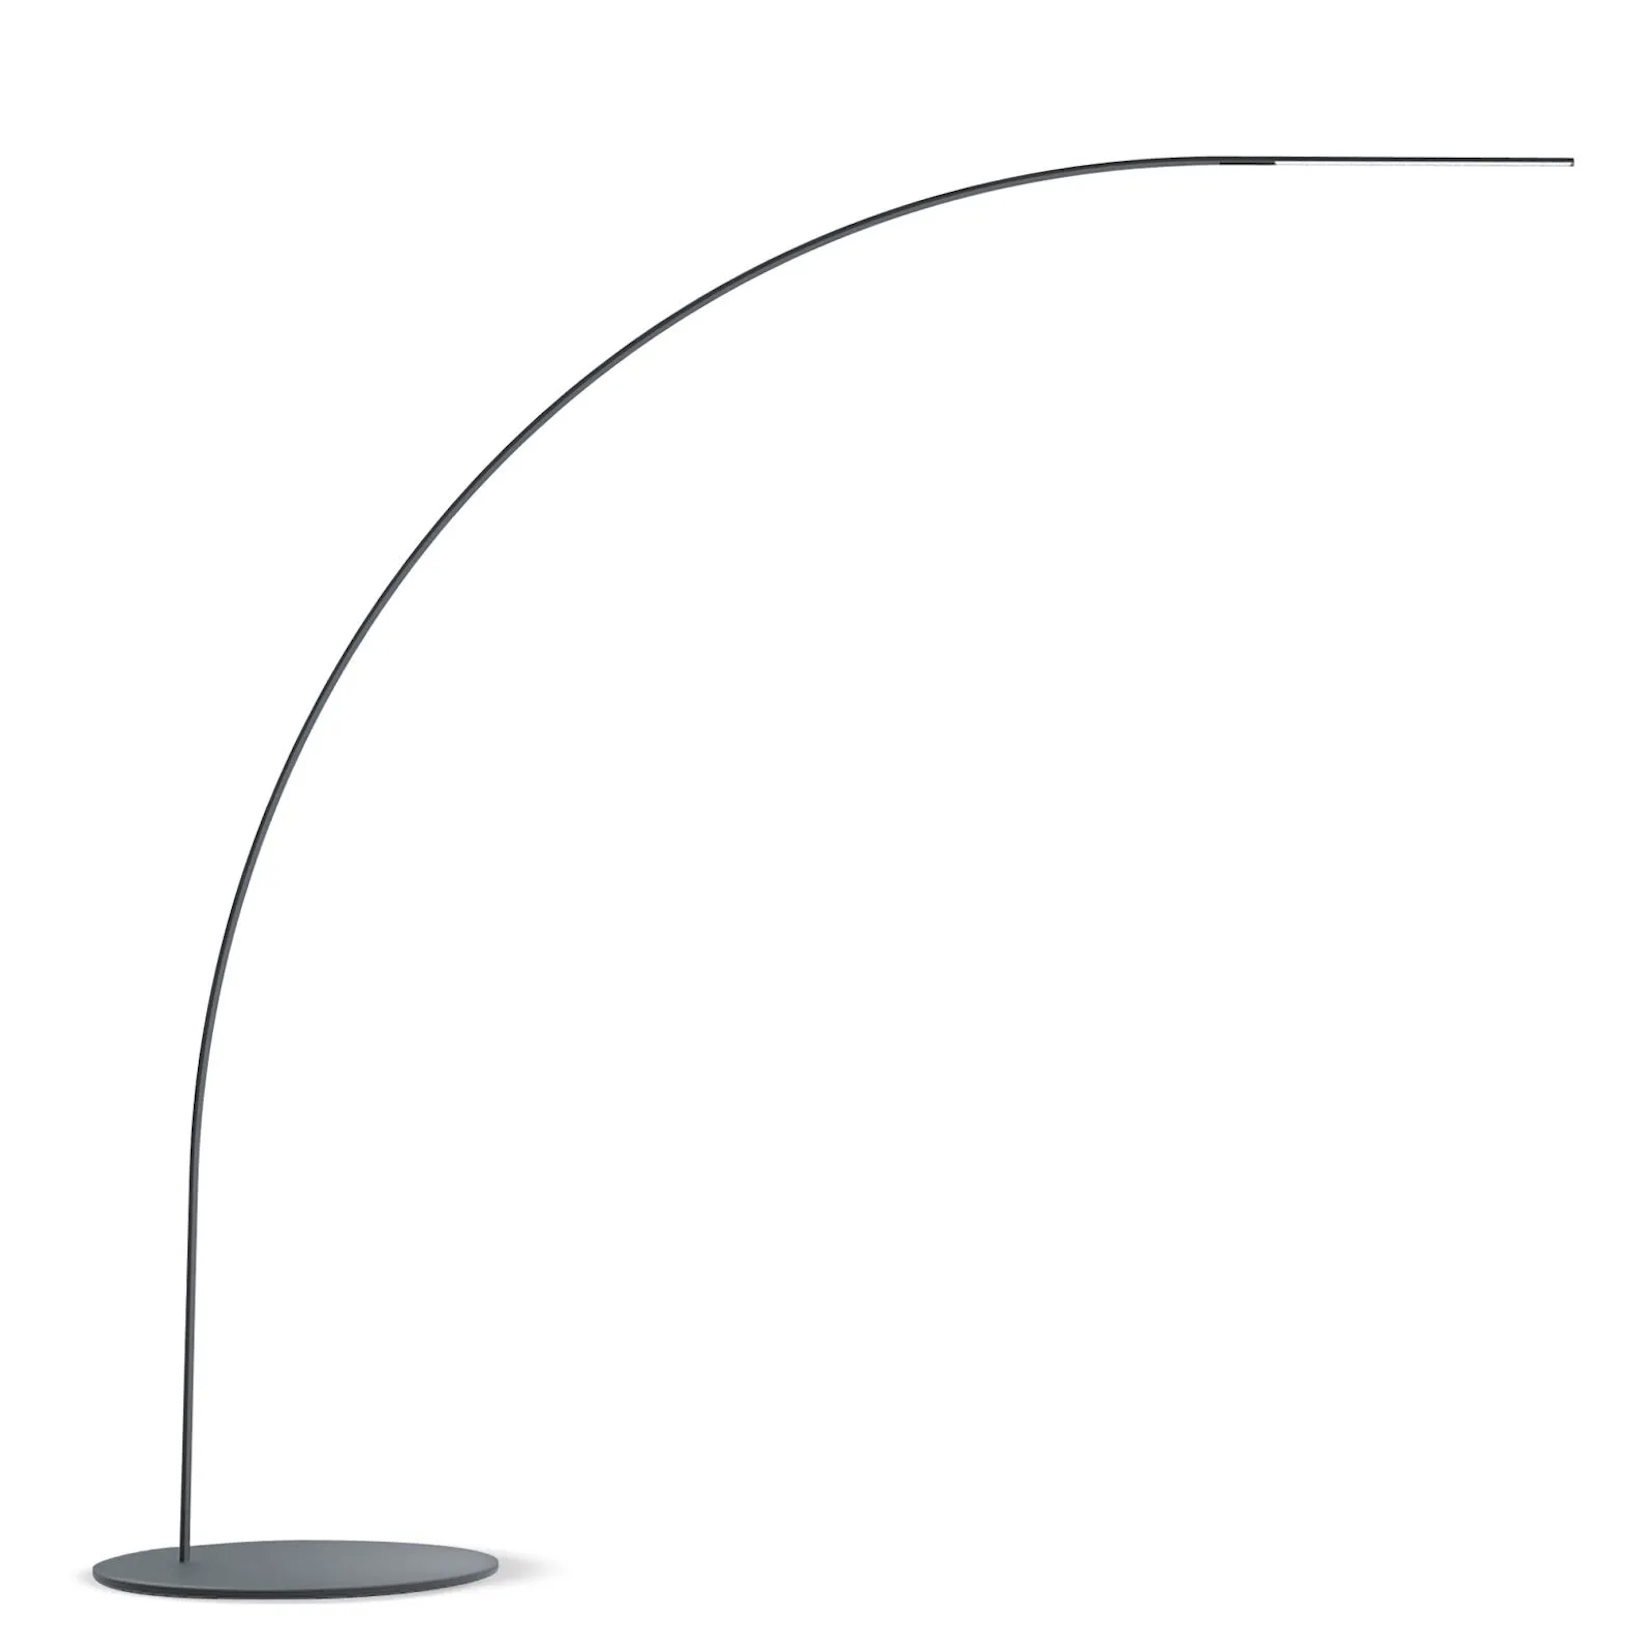 Yumi Floor Lamp - Yumi means bow in Japanese. Today, this simple shape is re-interpreted by Shigeru Ban for FontanaArte. Its absolute harmony is destined to turn into a new universal classic. Yumi is both delicate and strong: an essential sign that meets a resistant and light structure. 170 LEDs are discreetly sunk into the structure of the lamp minimising the use of space and further enhancing the continuous line of the bow design. Choosing materials that are resistant to high temperatures made it possible to sink the wiring entirely inside the stem during the production process. Yumi spreads a warm downward glow which is ideal forcreating an intimate atmosphere. It adds character to different interiors with its distinct but subtle personality.  Floor lamp with direct and dimmable light. Painted aluminium frame. Painted metal base. Black power cable, dimmer and plug. Plug-in power supply with interchangeable plugs (UK - USA - UE - AUS). Integrated led. | Matter of Stuff